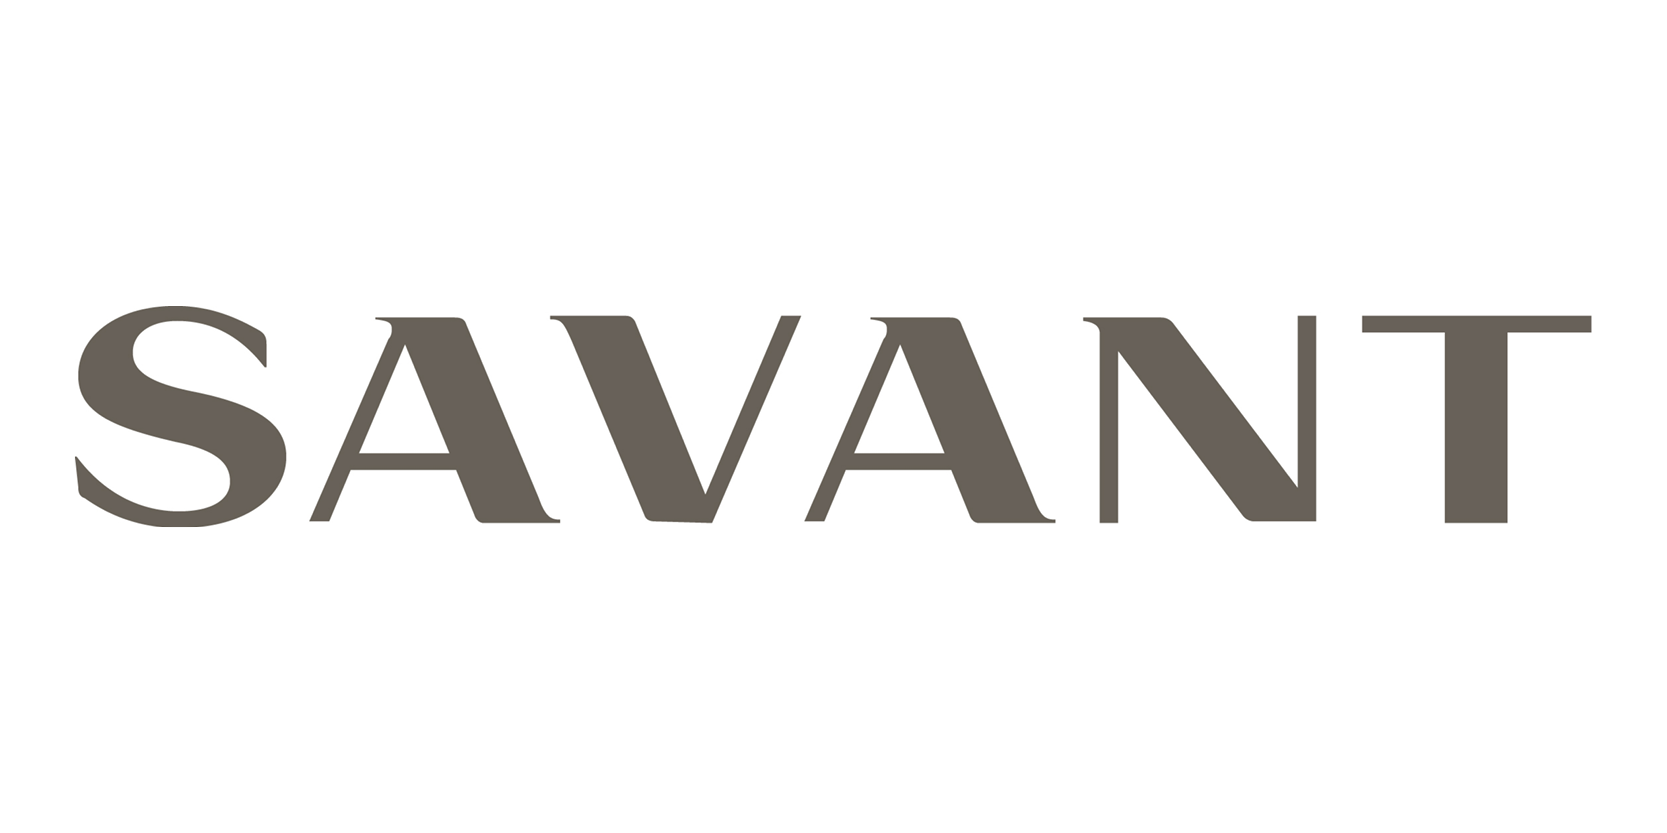 Sound-Designs-Savant-Systems-Toronto.png